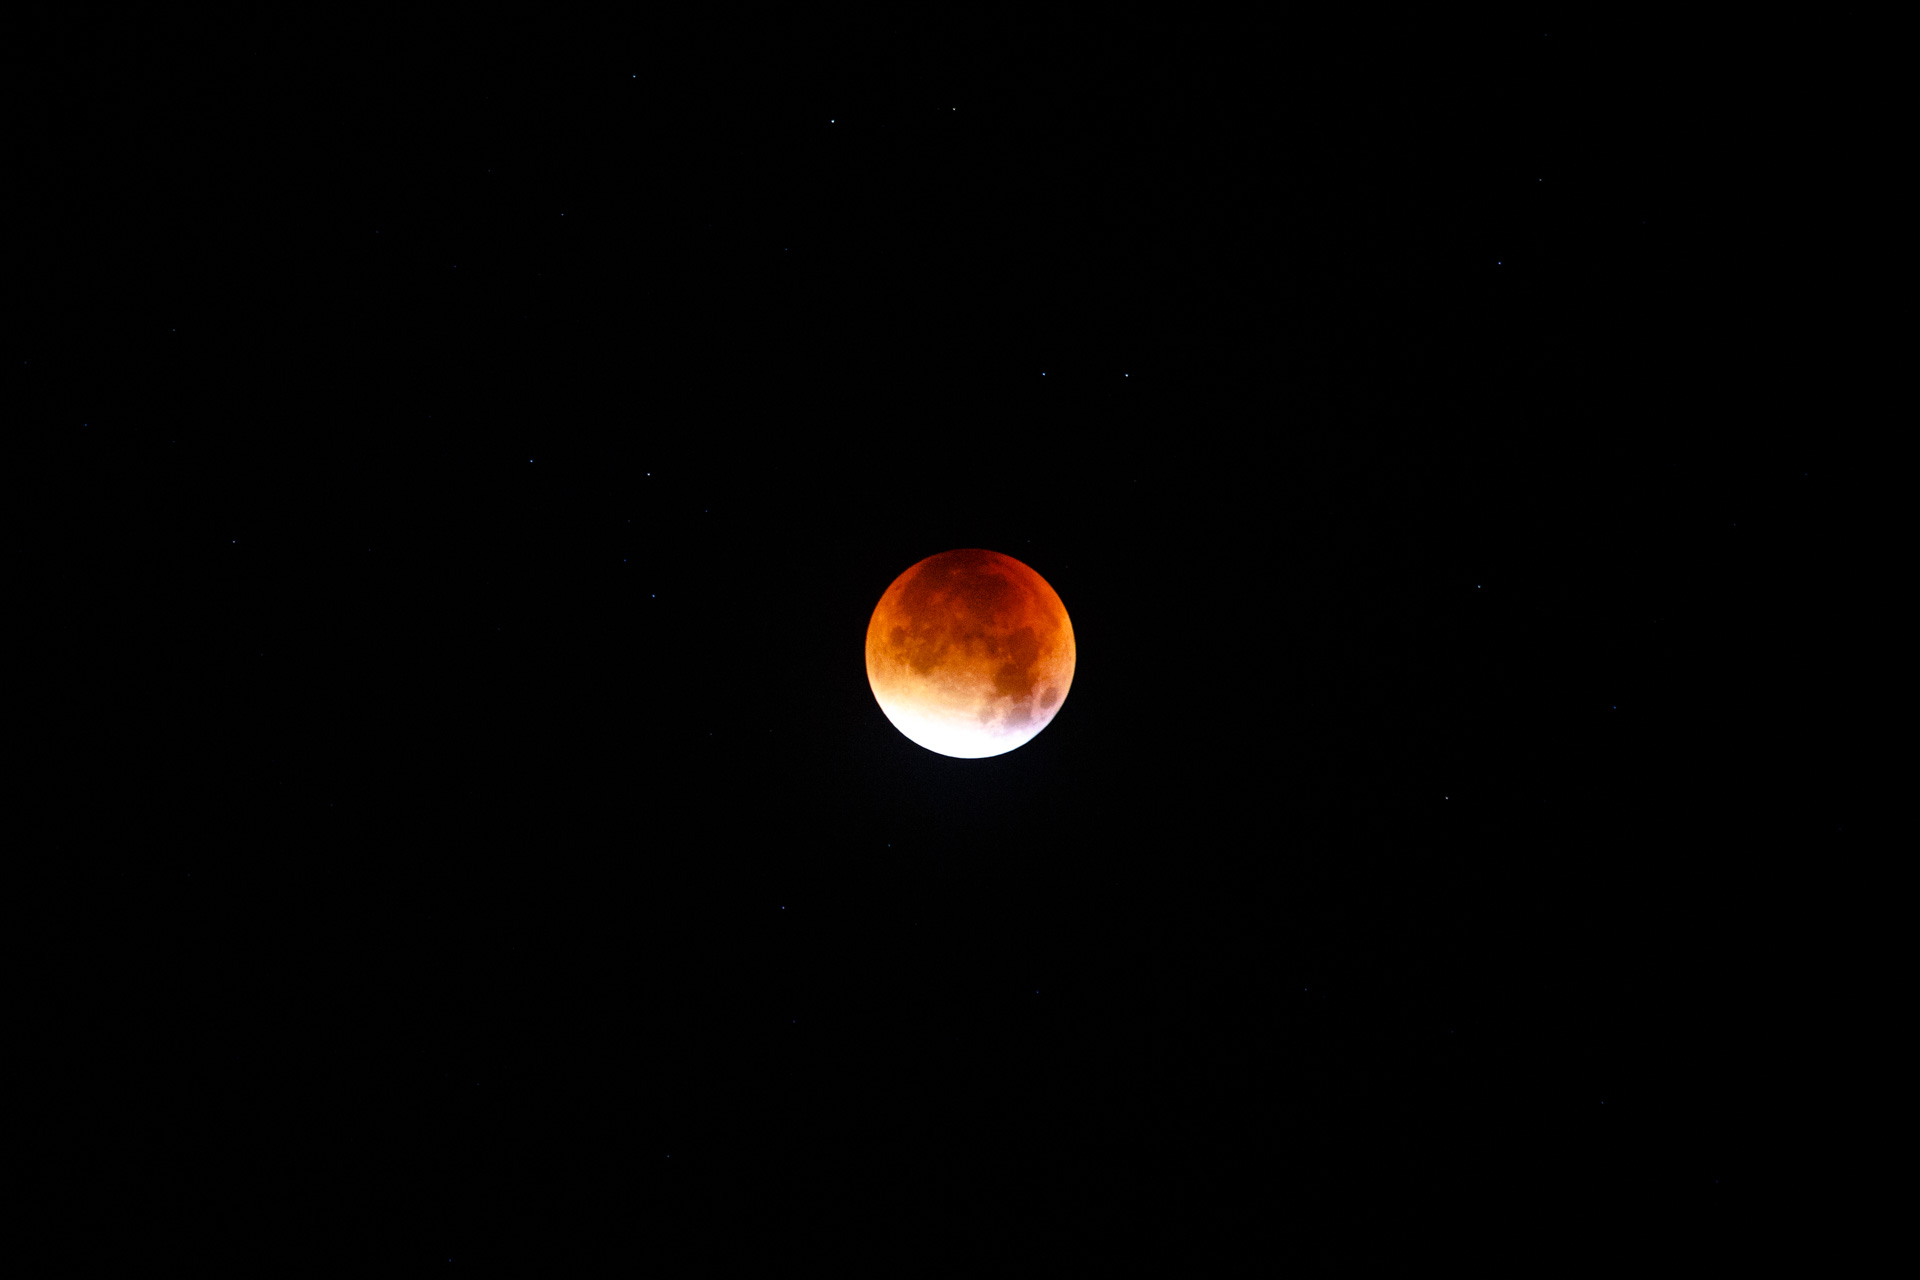 The Bloodmoon made its appearance around 3am!